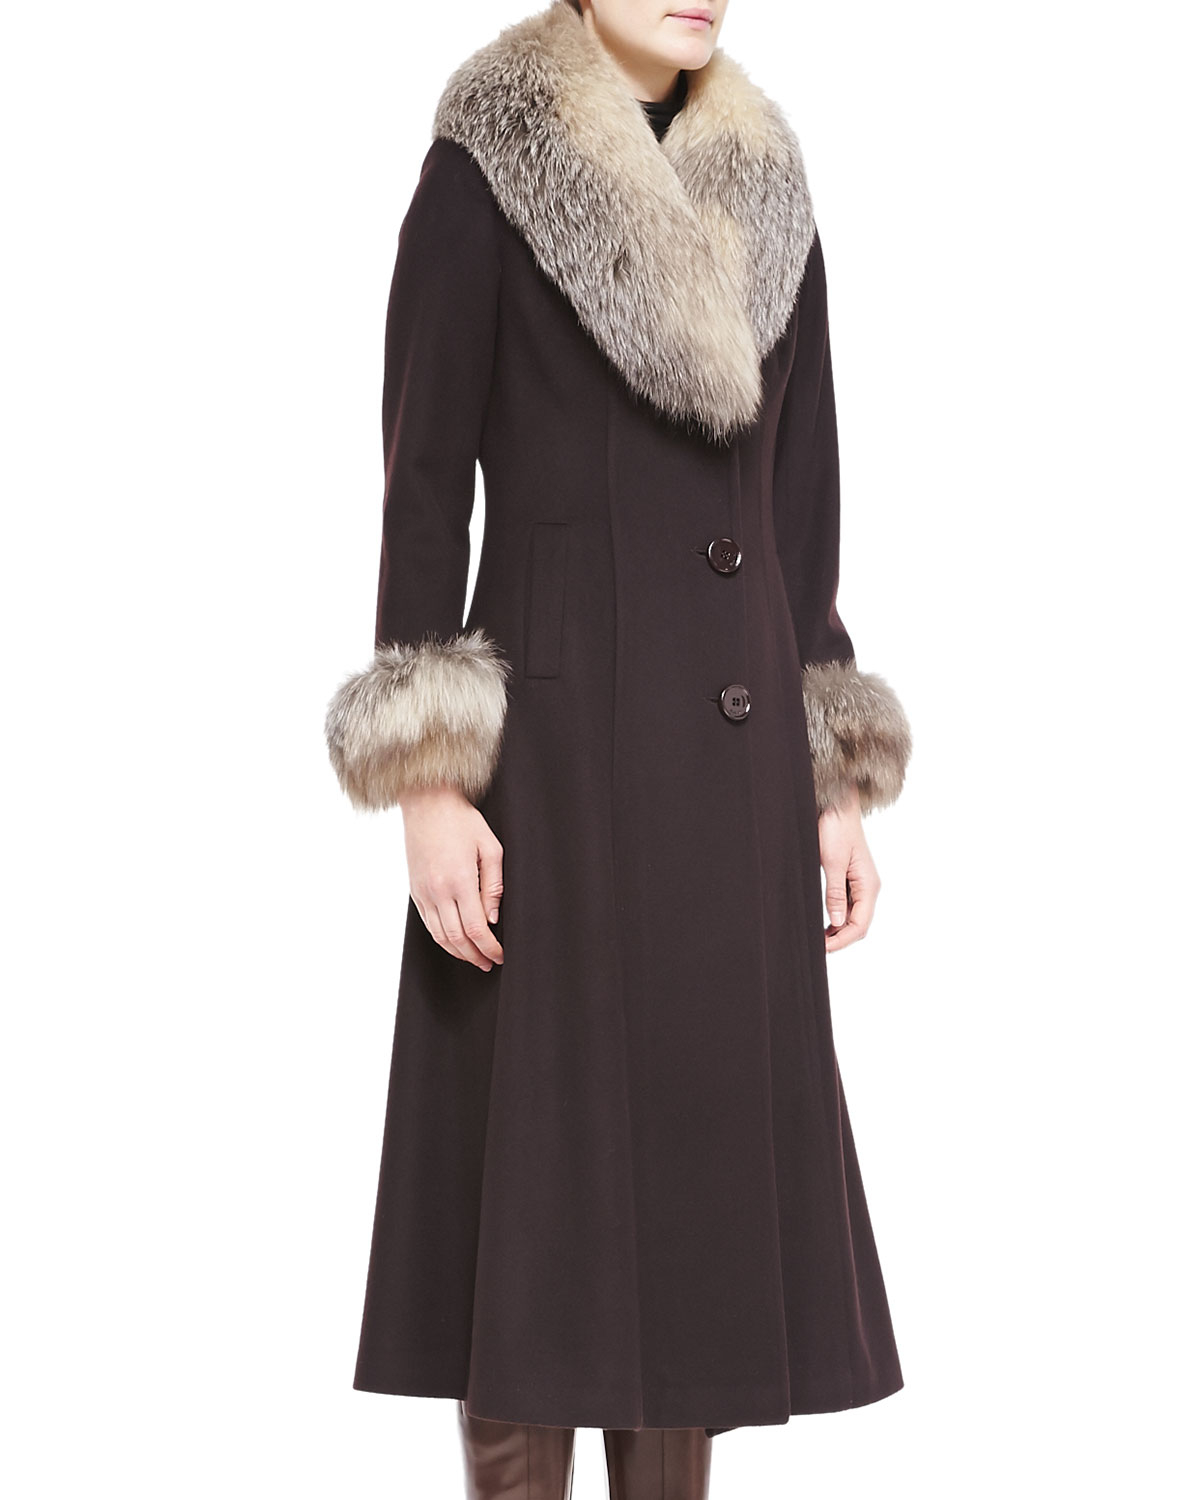 Belle fare Maxi Cashmere Coat W/ Fur Trim in Gray | Lyst